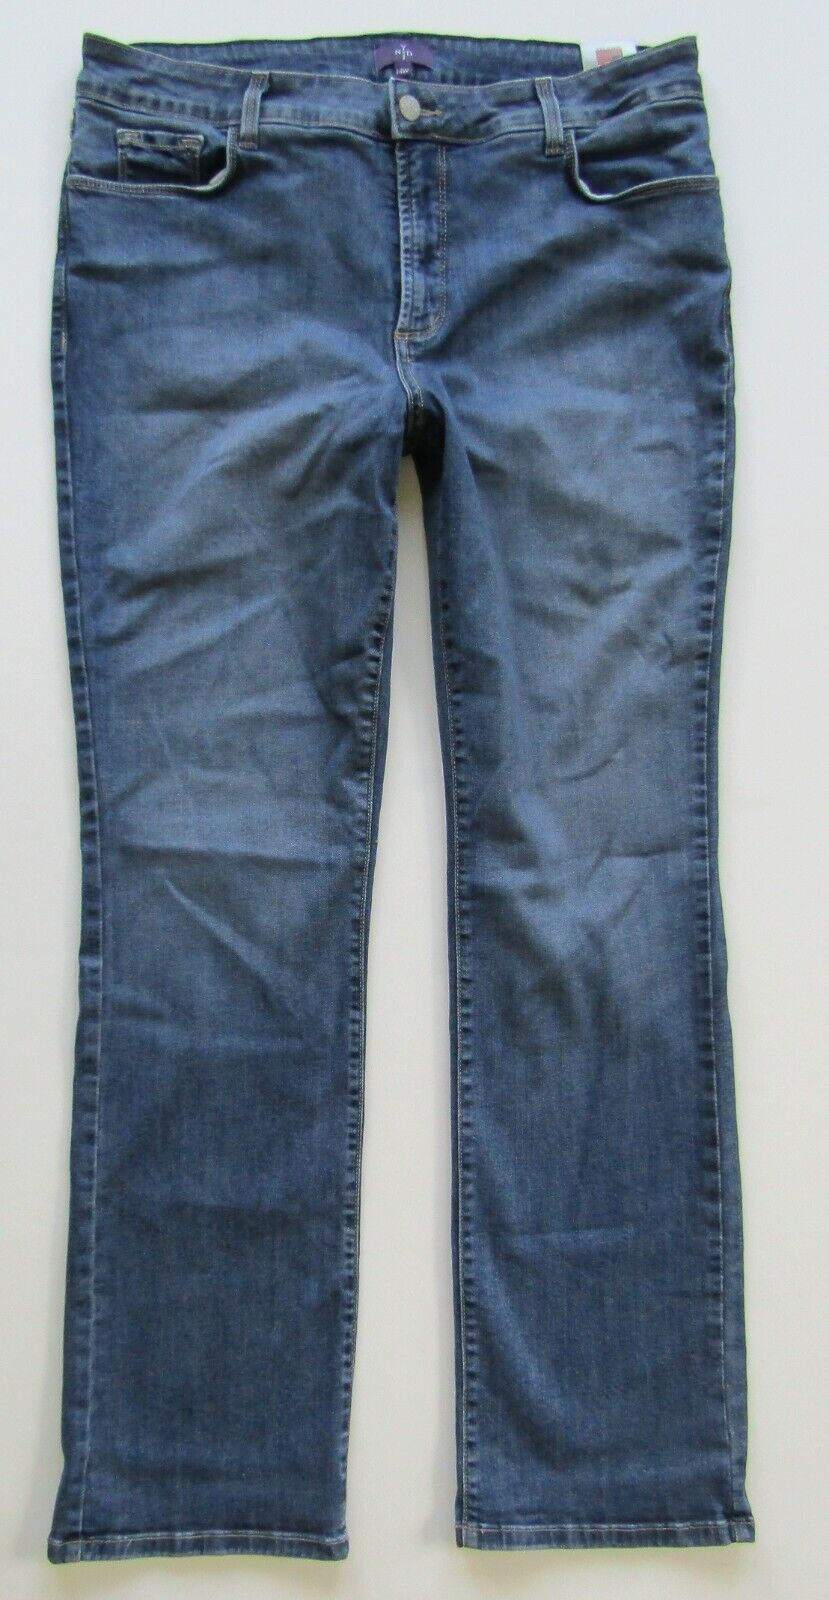 NYDJ Not Your Daughters Jeans Straight Leg Stretch, Medium Wash - Size 14 W